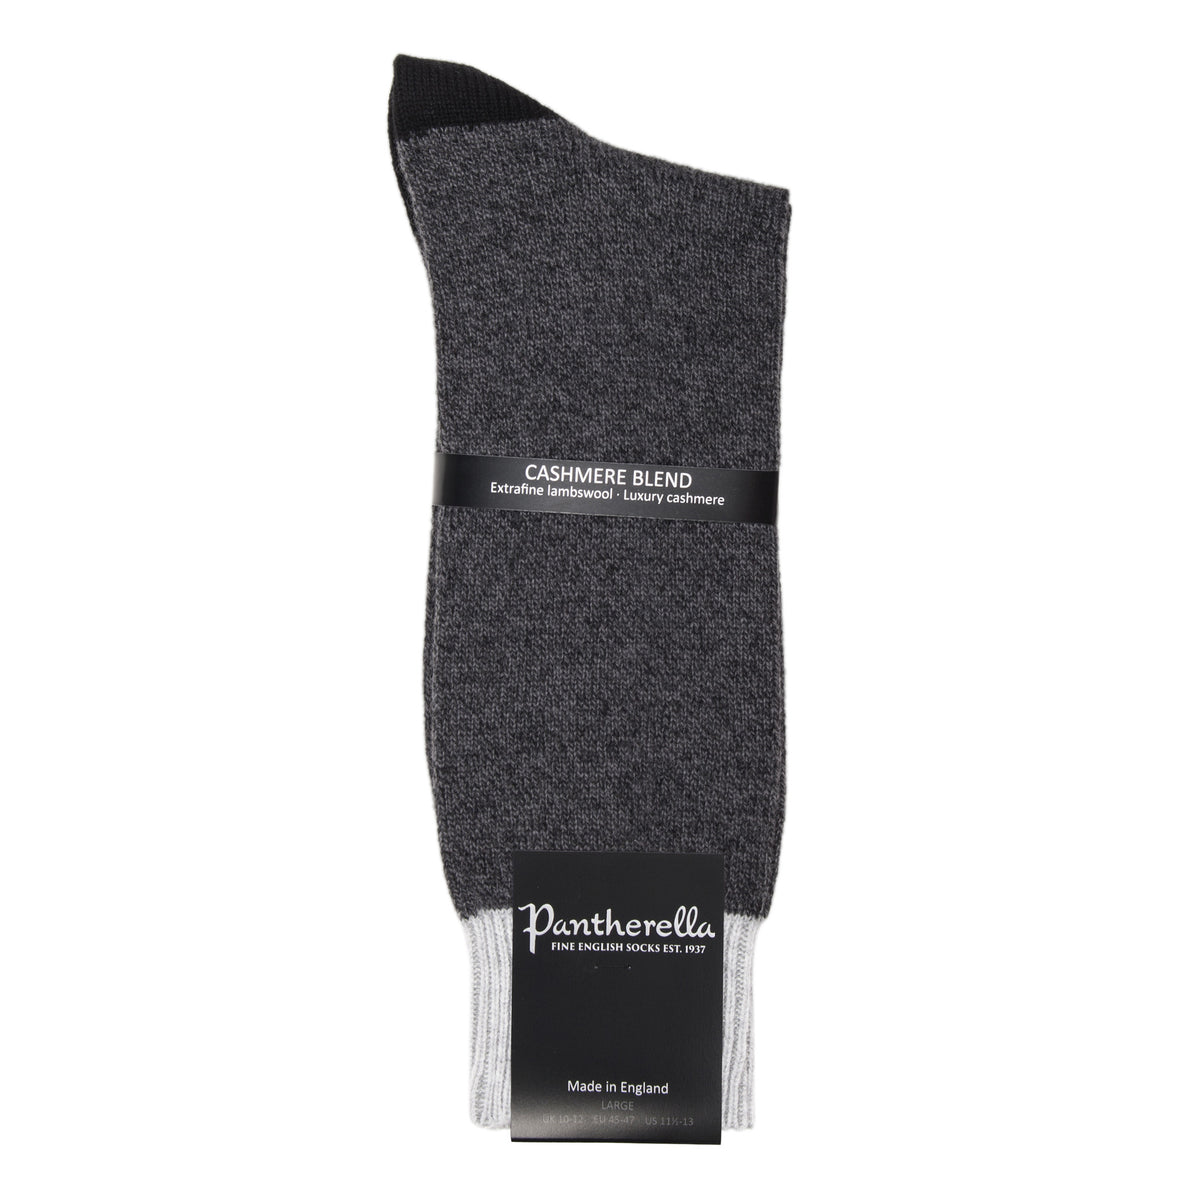 Grey Cashmere Blend Contrast Socks for Men | buy now at The Cashmere Choice London